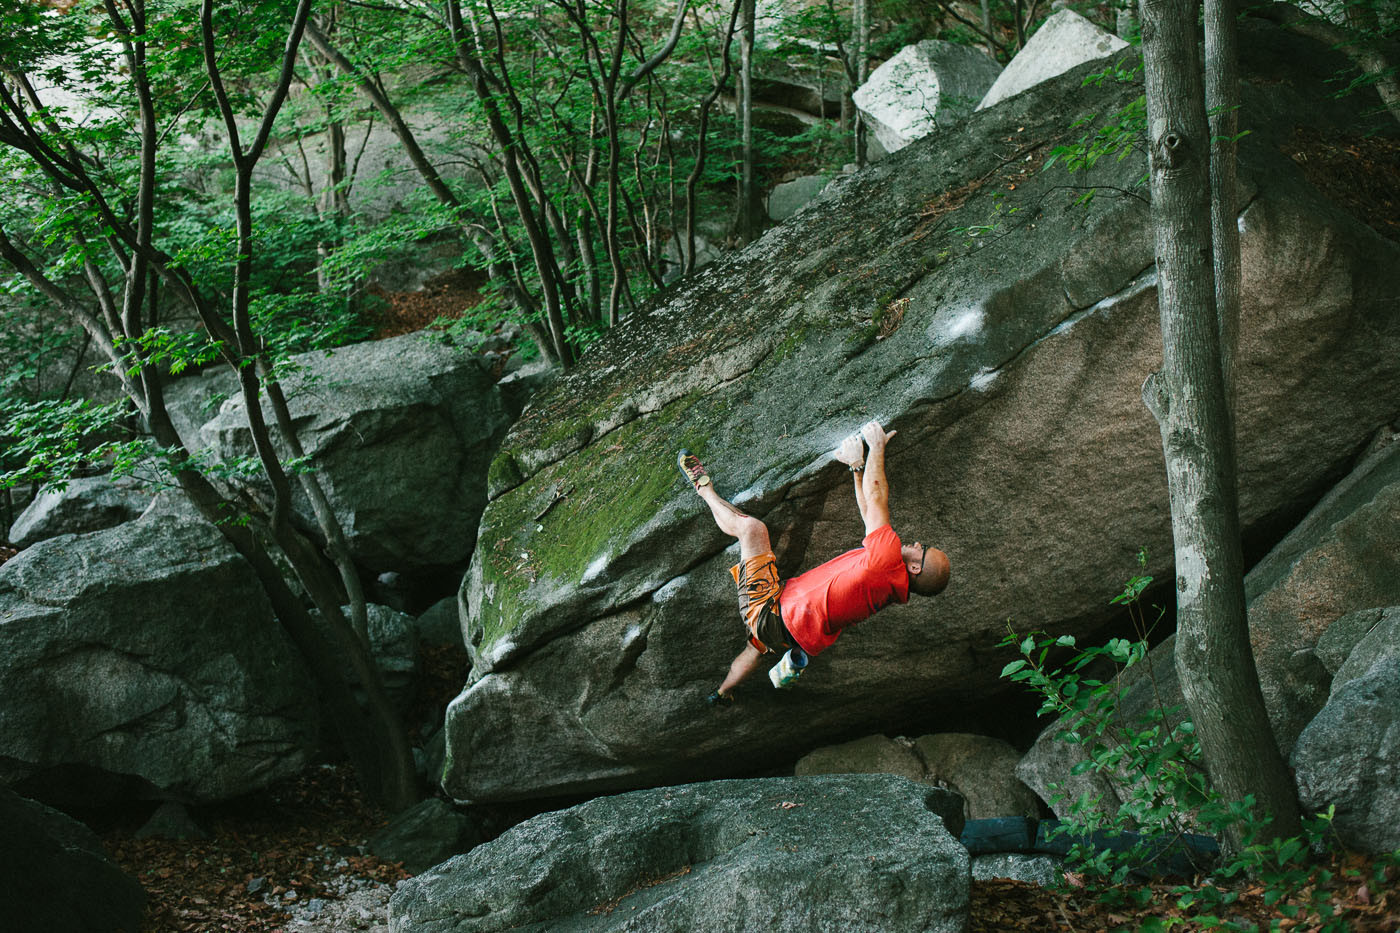 Dave McAllister climbs Soju Warrior at Insubong near Seoul, South Korea